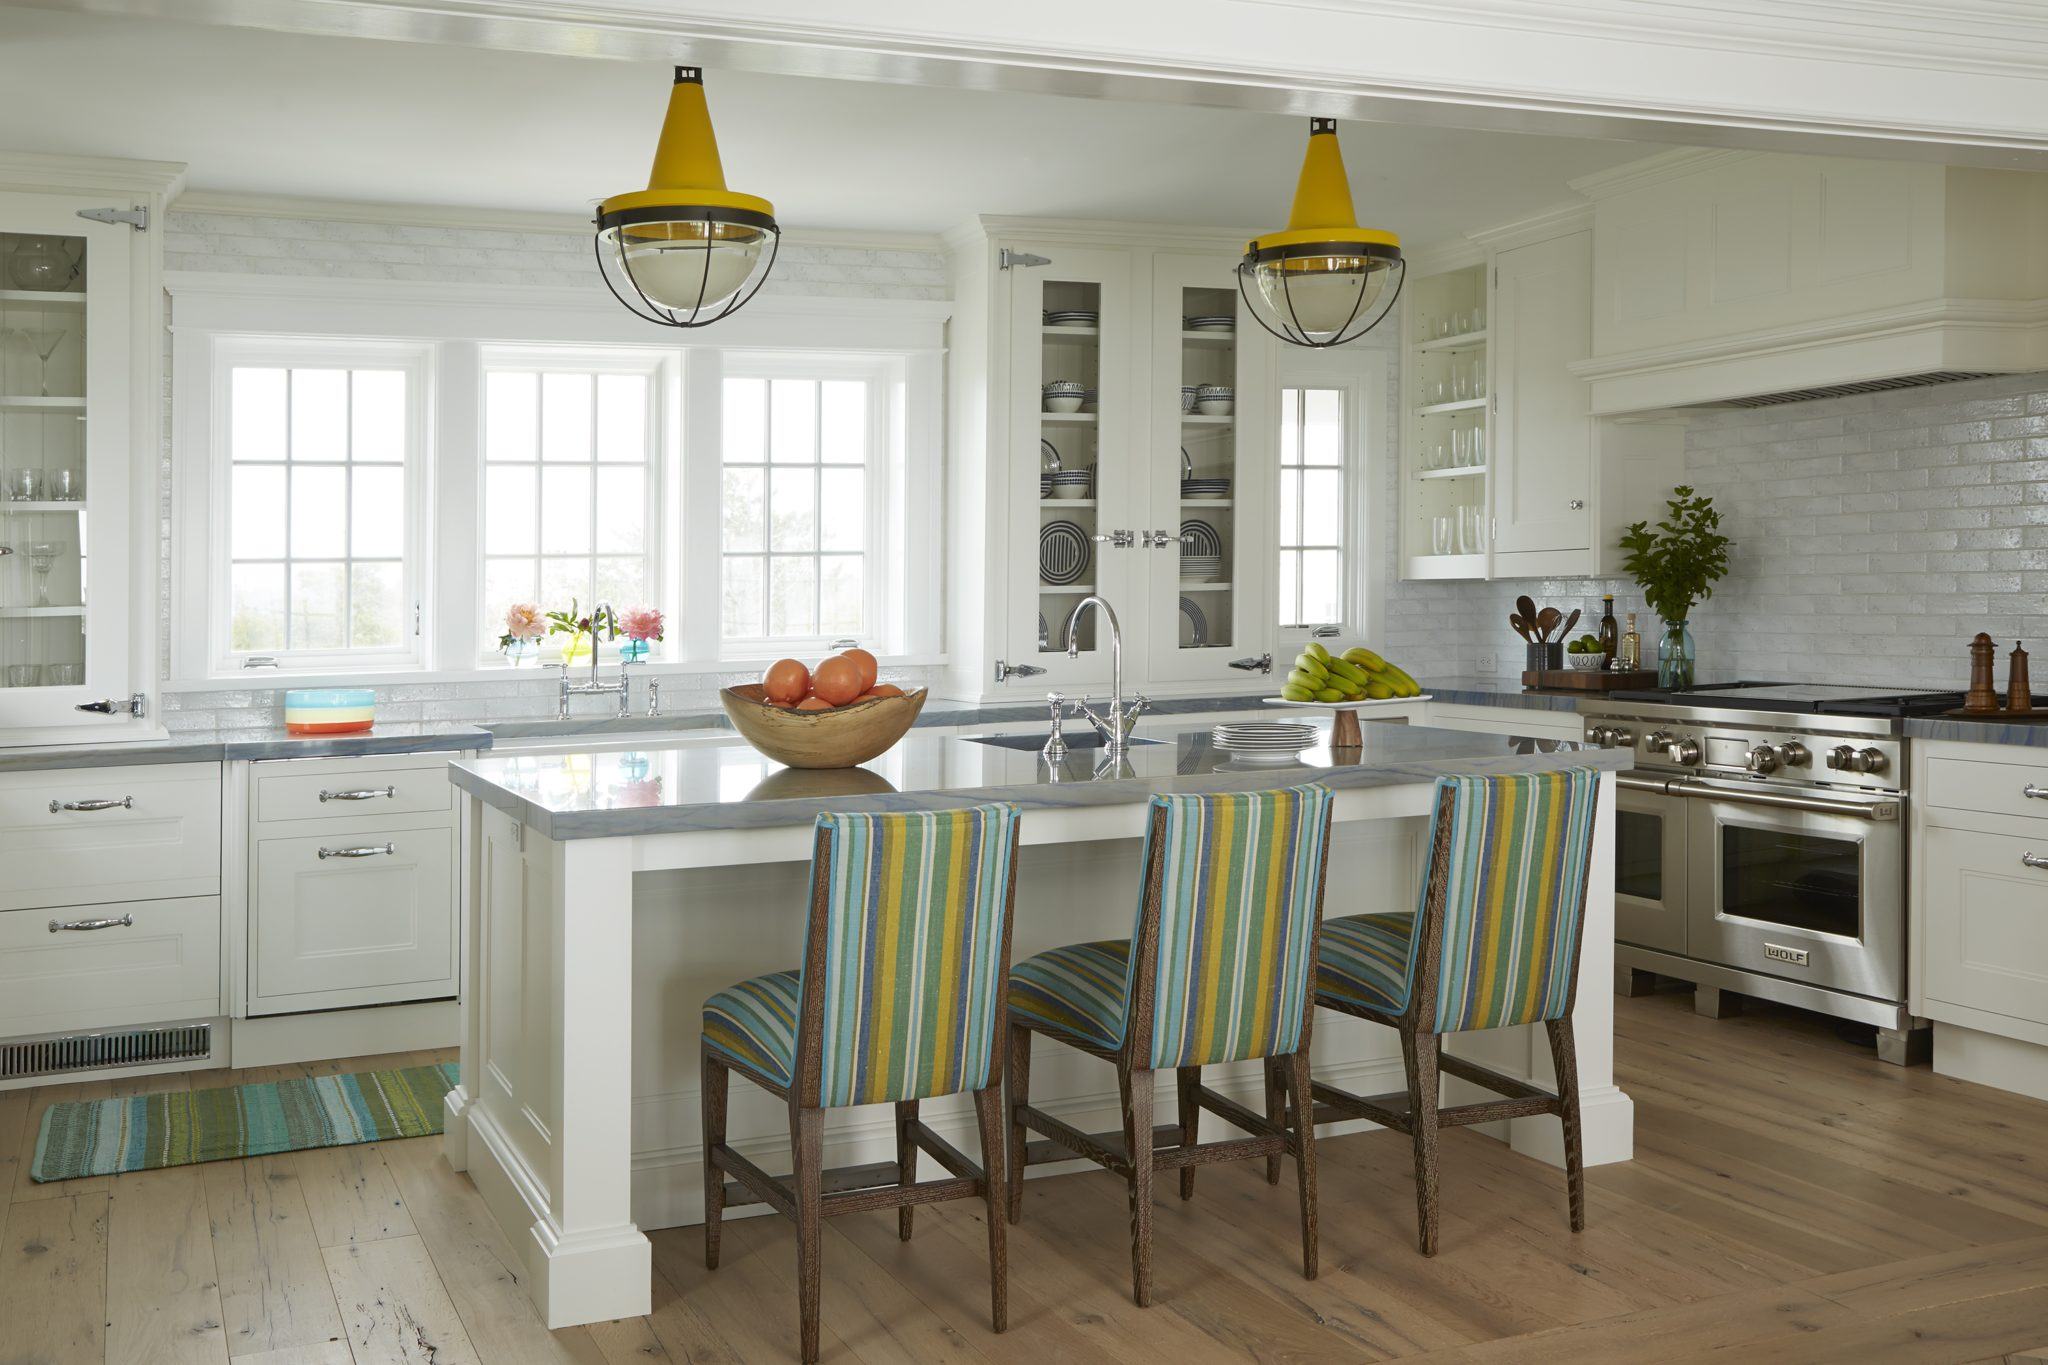 Hanging marigold pendants pick up accent colors in the barstools' fabric. by Scott Sanders